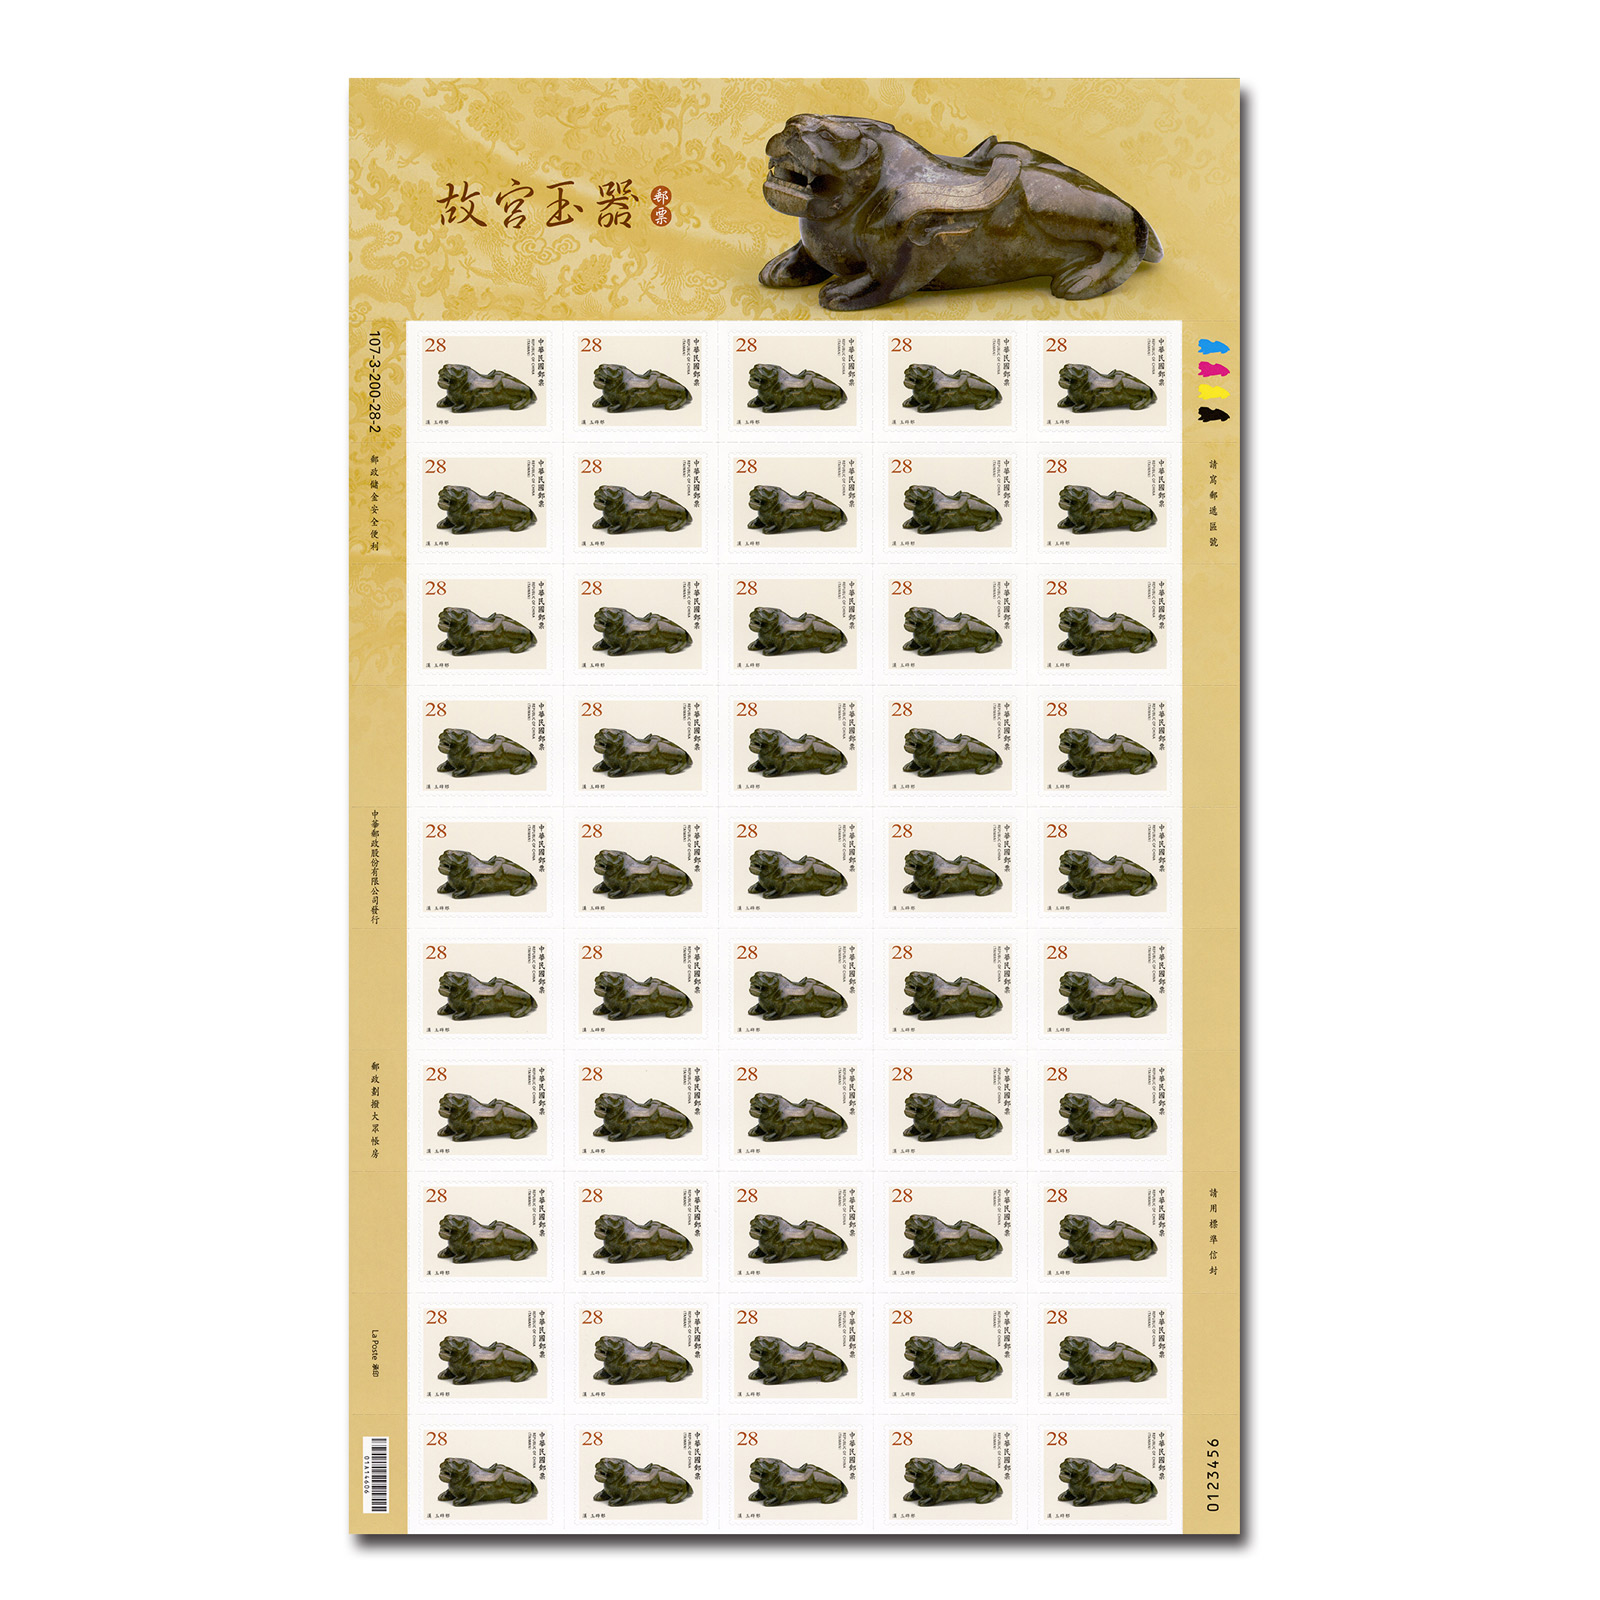 Jade Articles from the National Palace Museum Postage Stamps-Jade Bixie auspicious beast, Han dynasty NT$28 (self-adhesive stamp paper)